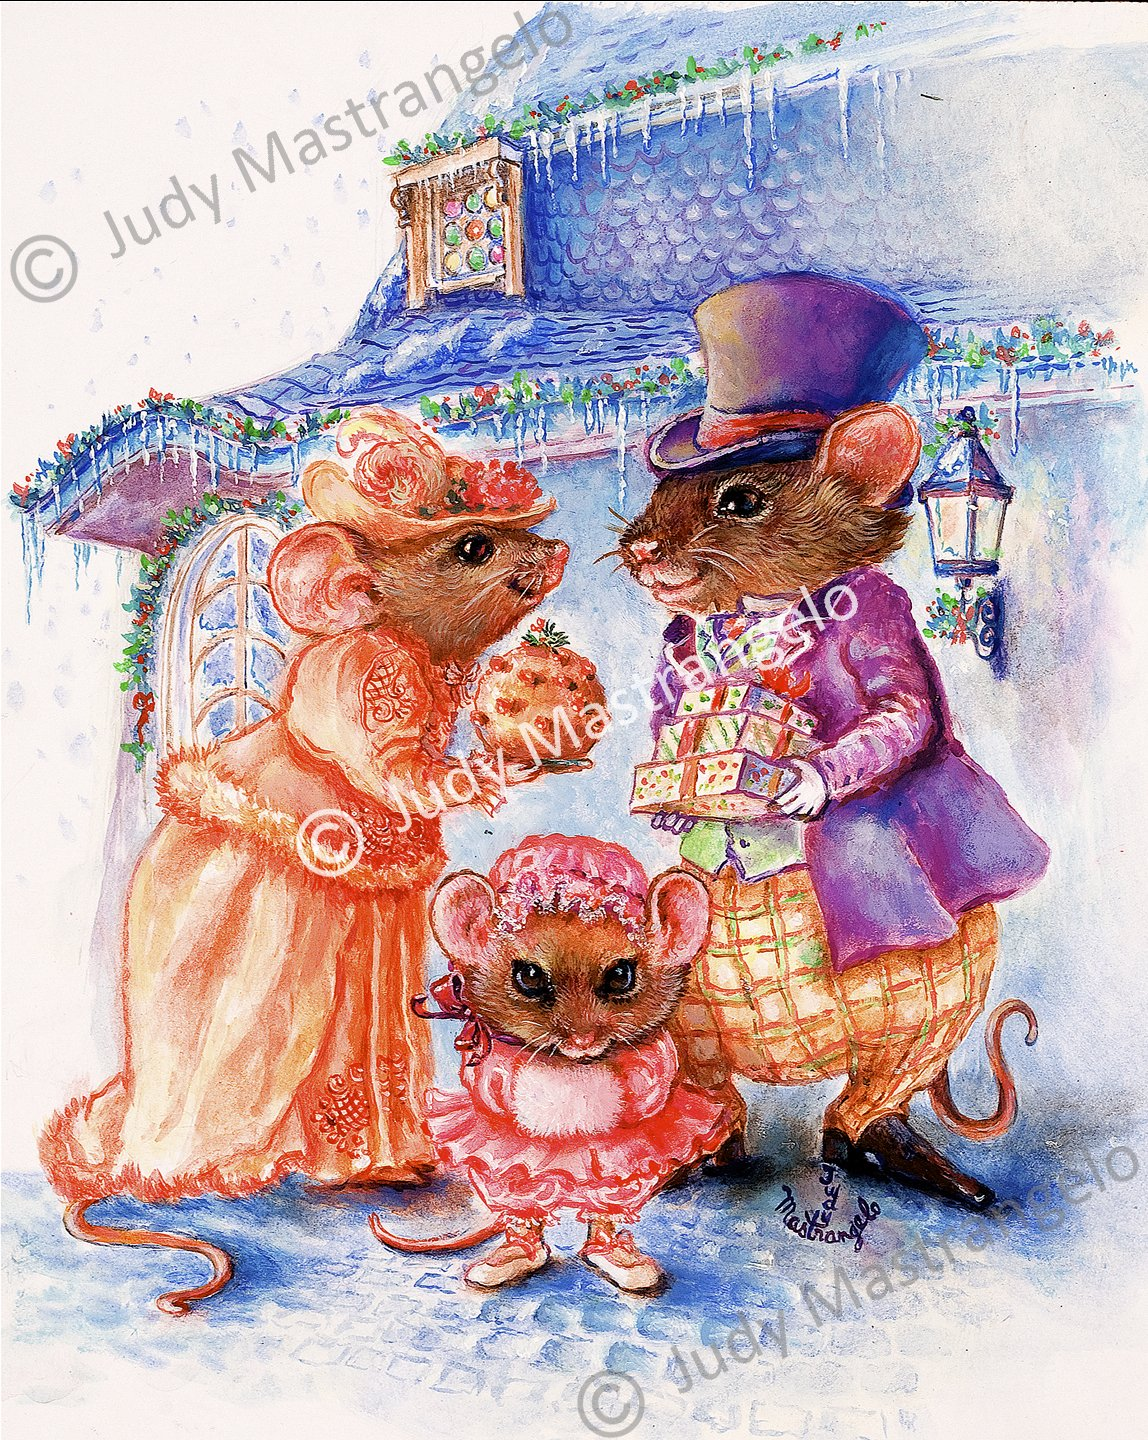 Mouse Christmas Gifts 12 X 8 FINE ART CANVAS FRAMED PRINT